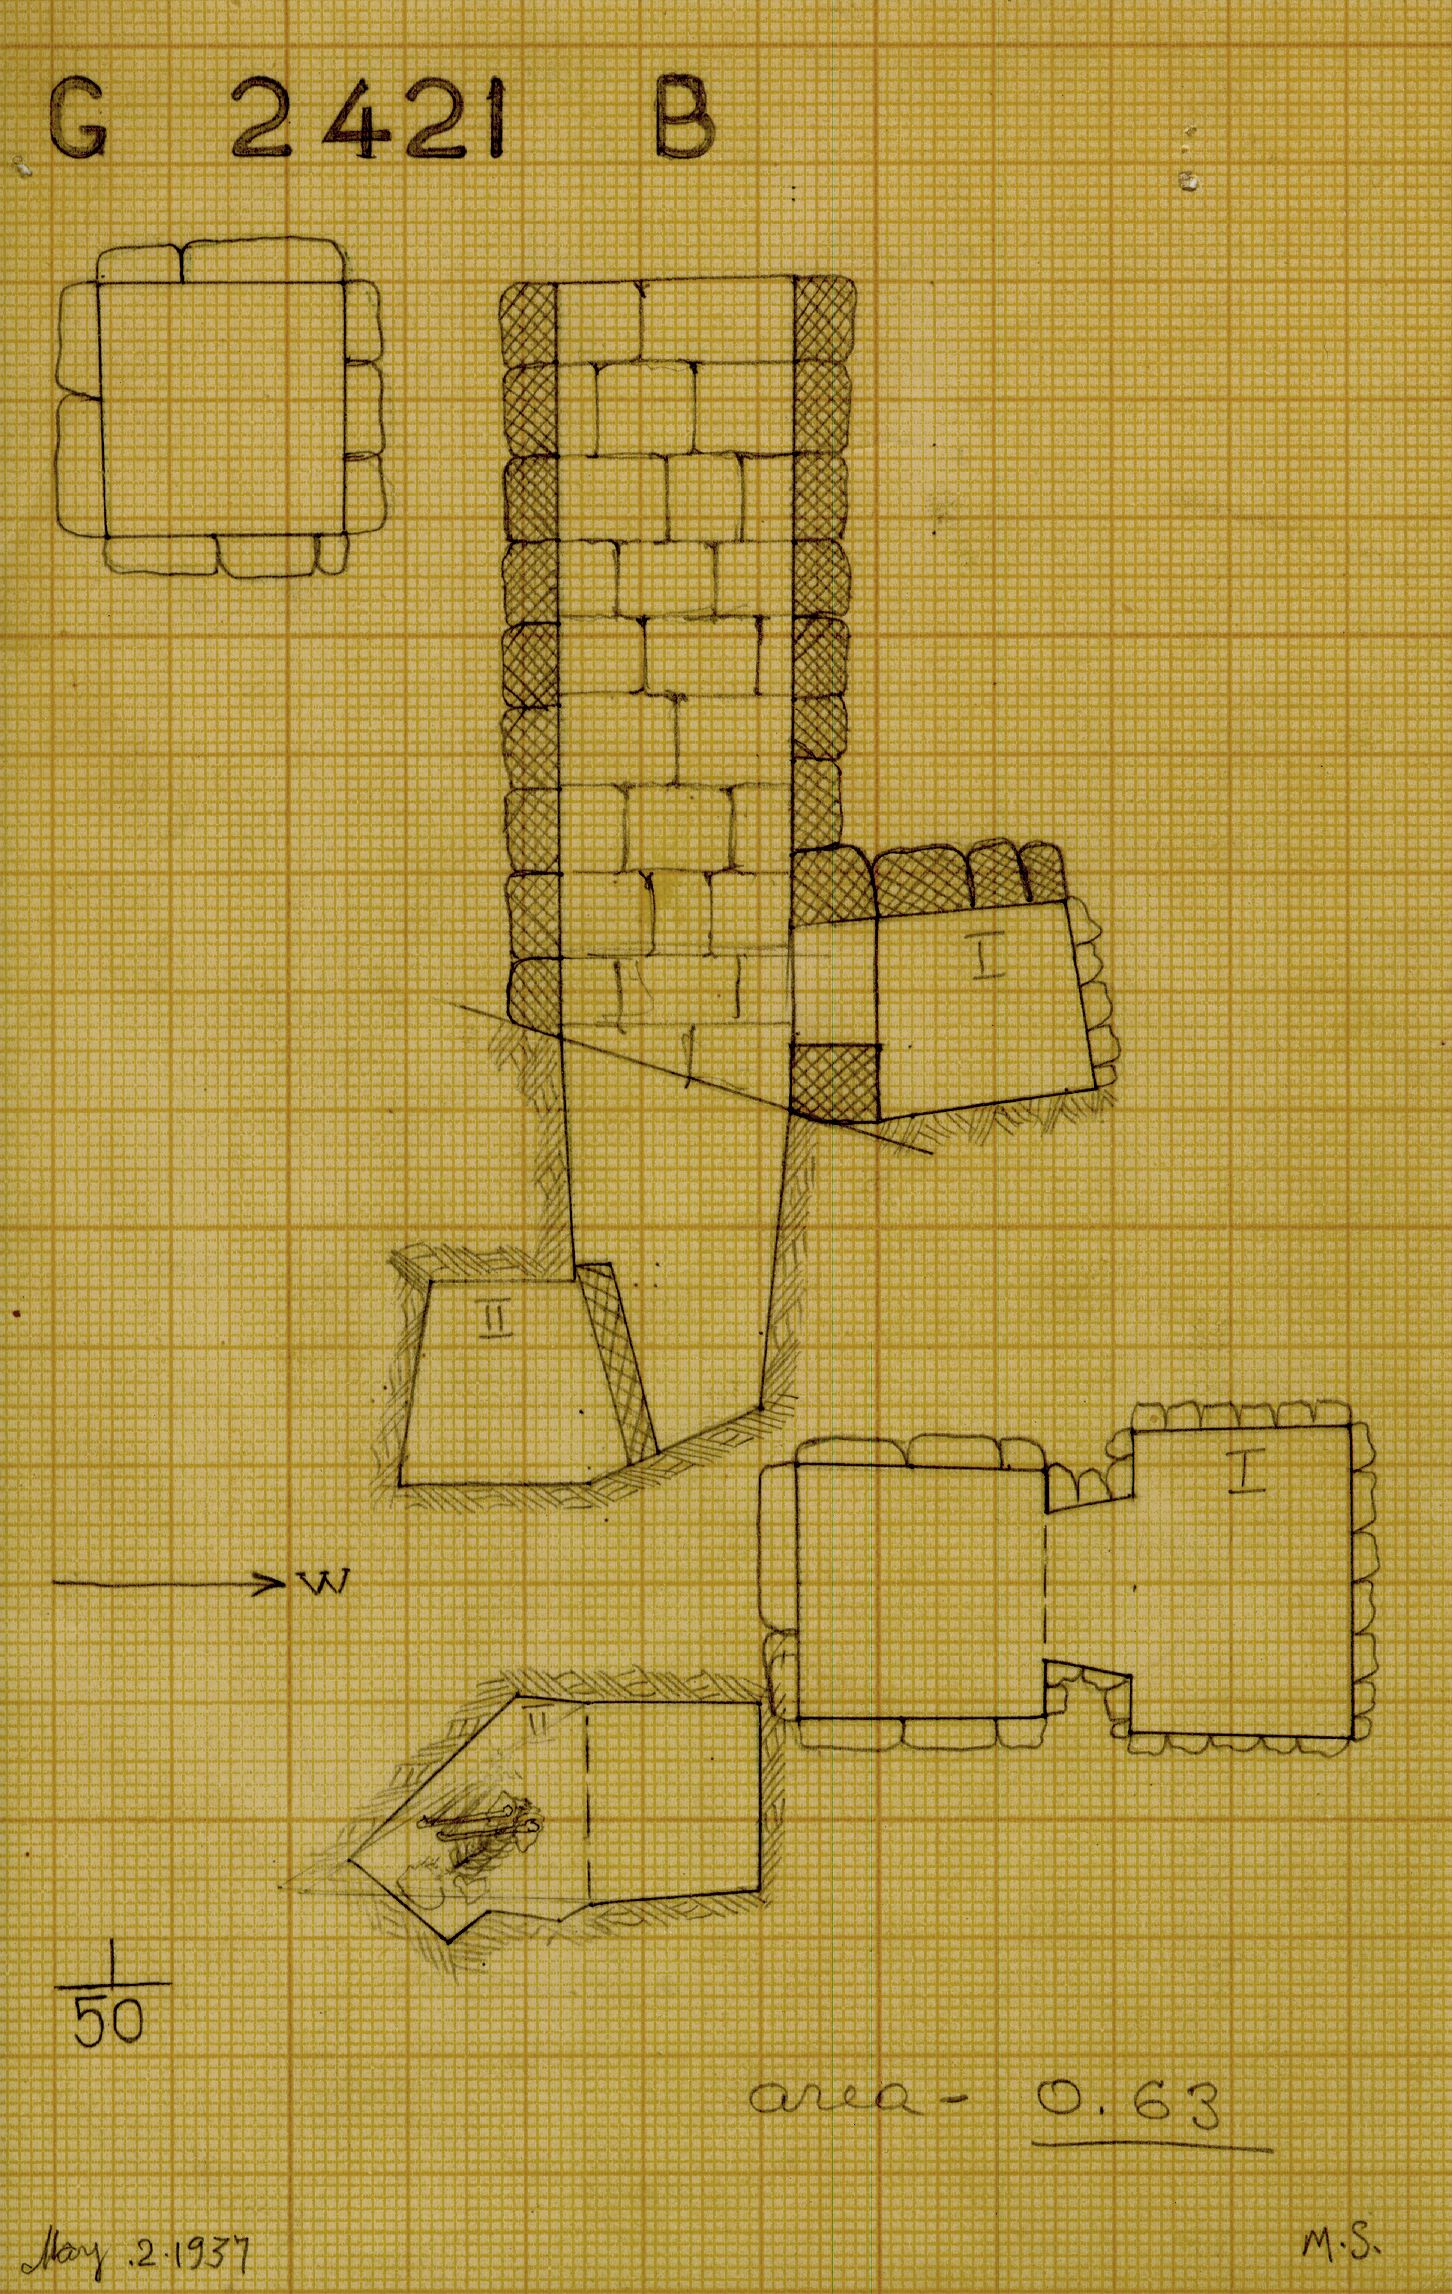 Maps and plans: G 2421, Shaft B